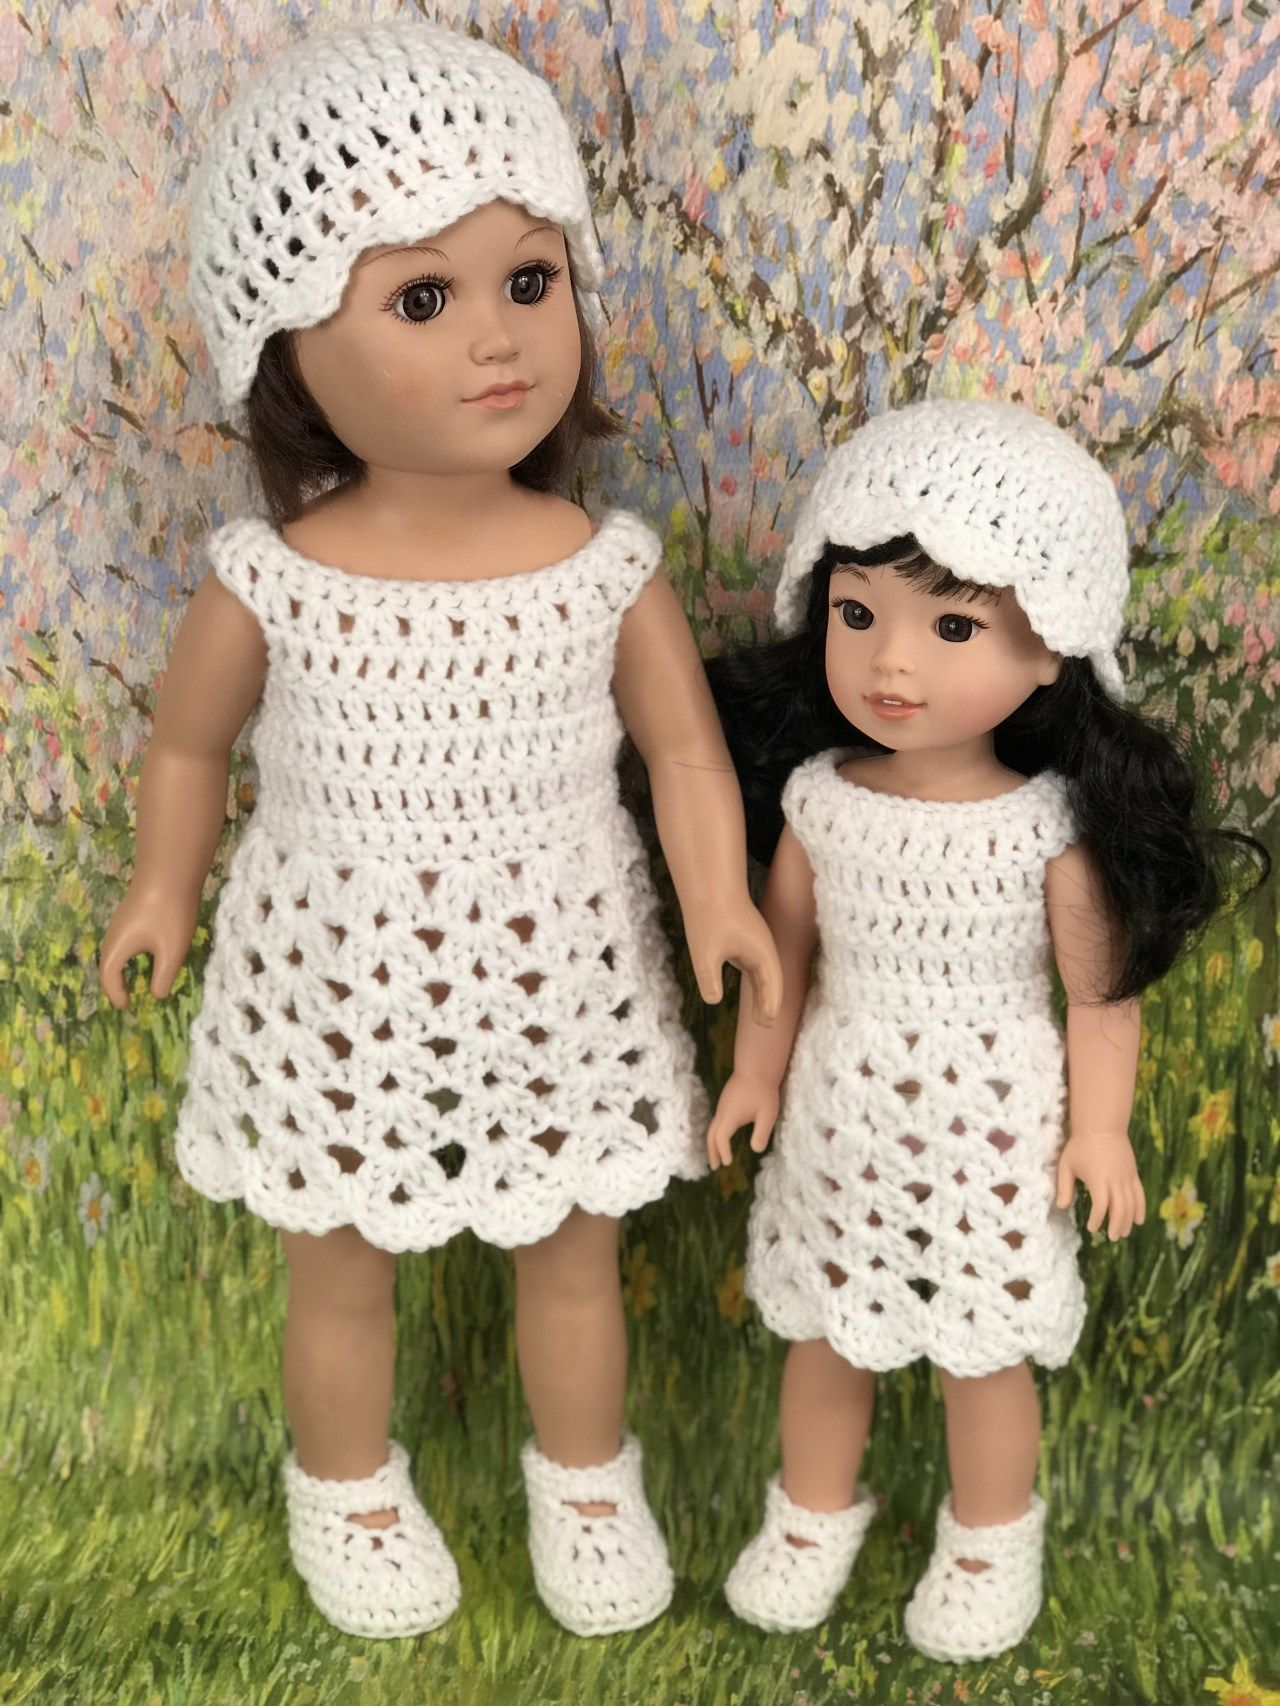 Crochet Pattern 18 Doll Easter Outfit - Adoring Doll Clothes